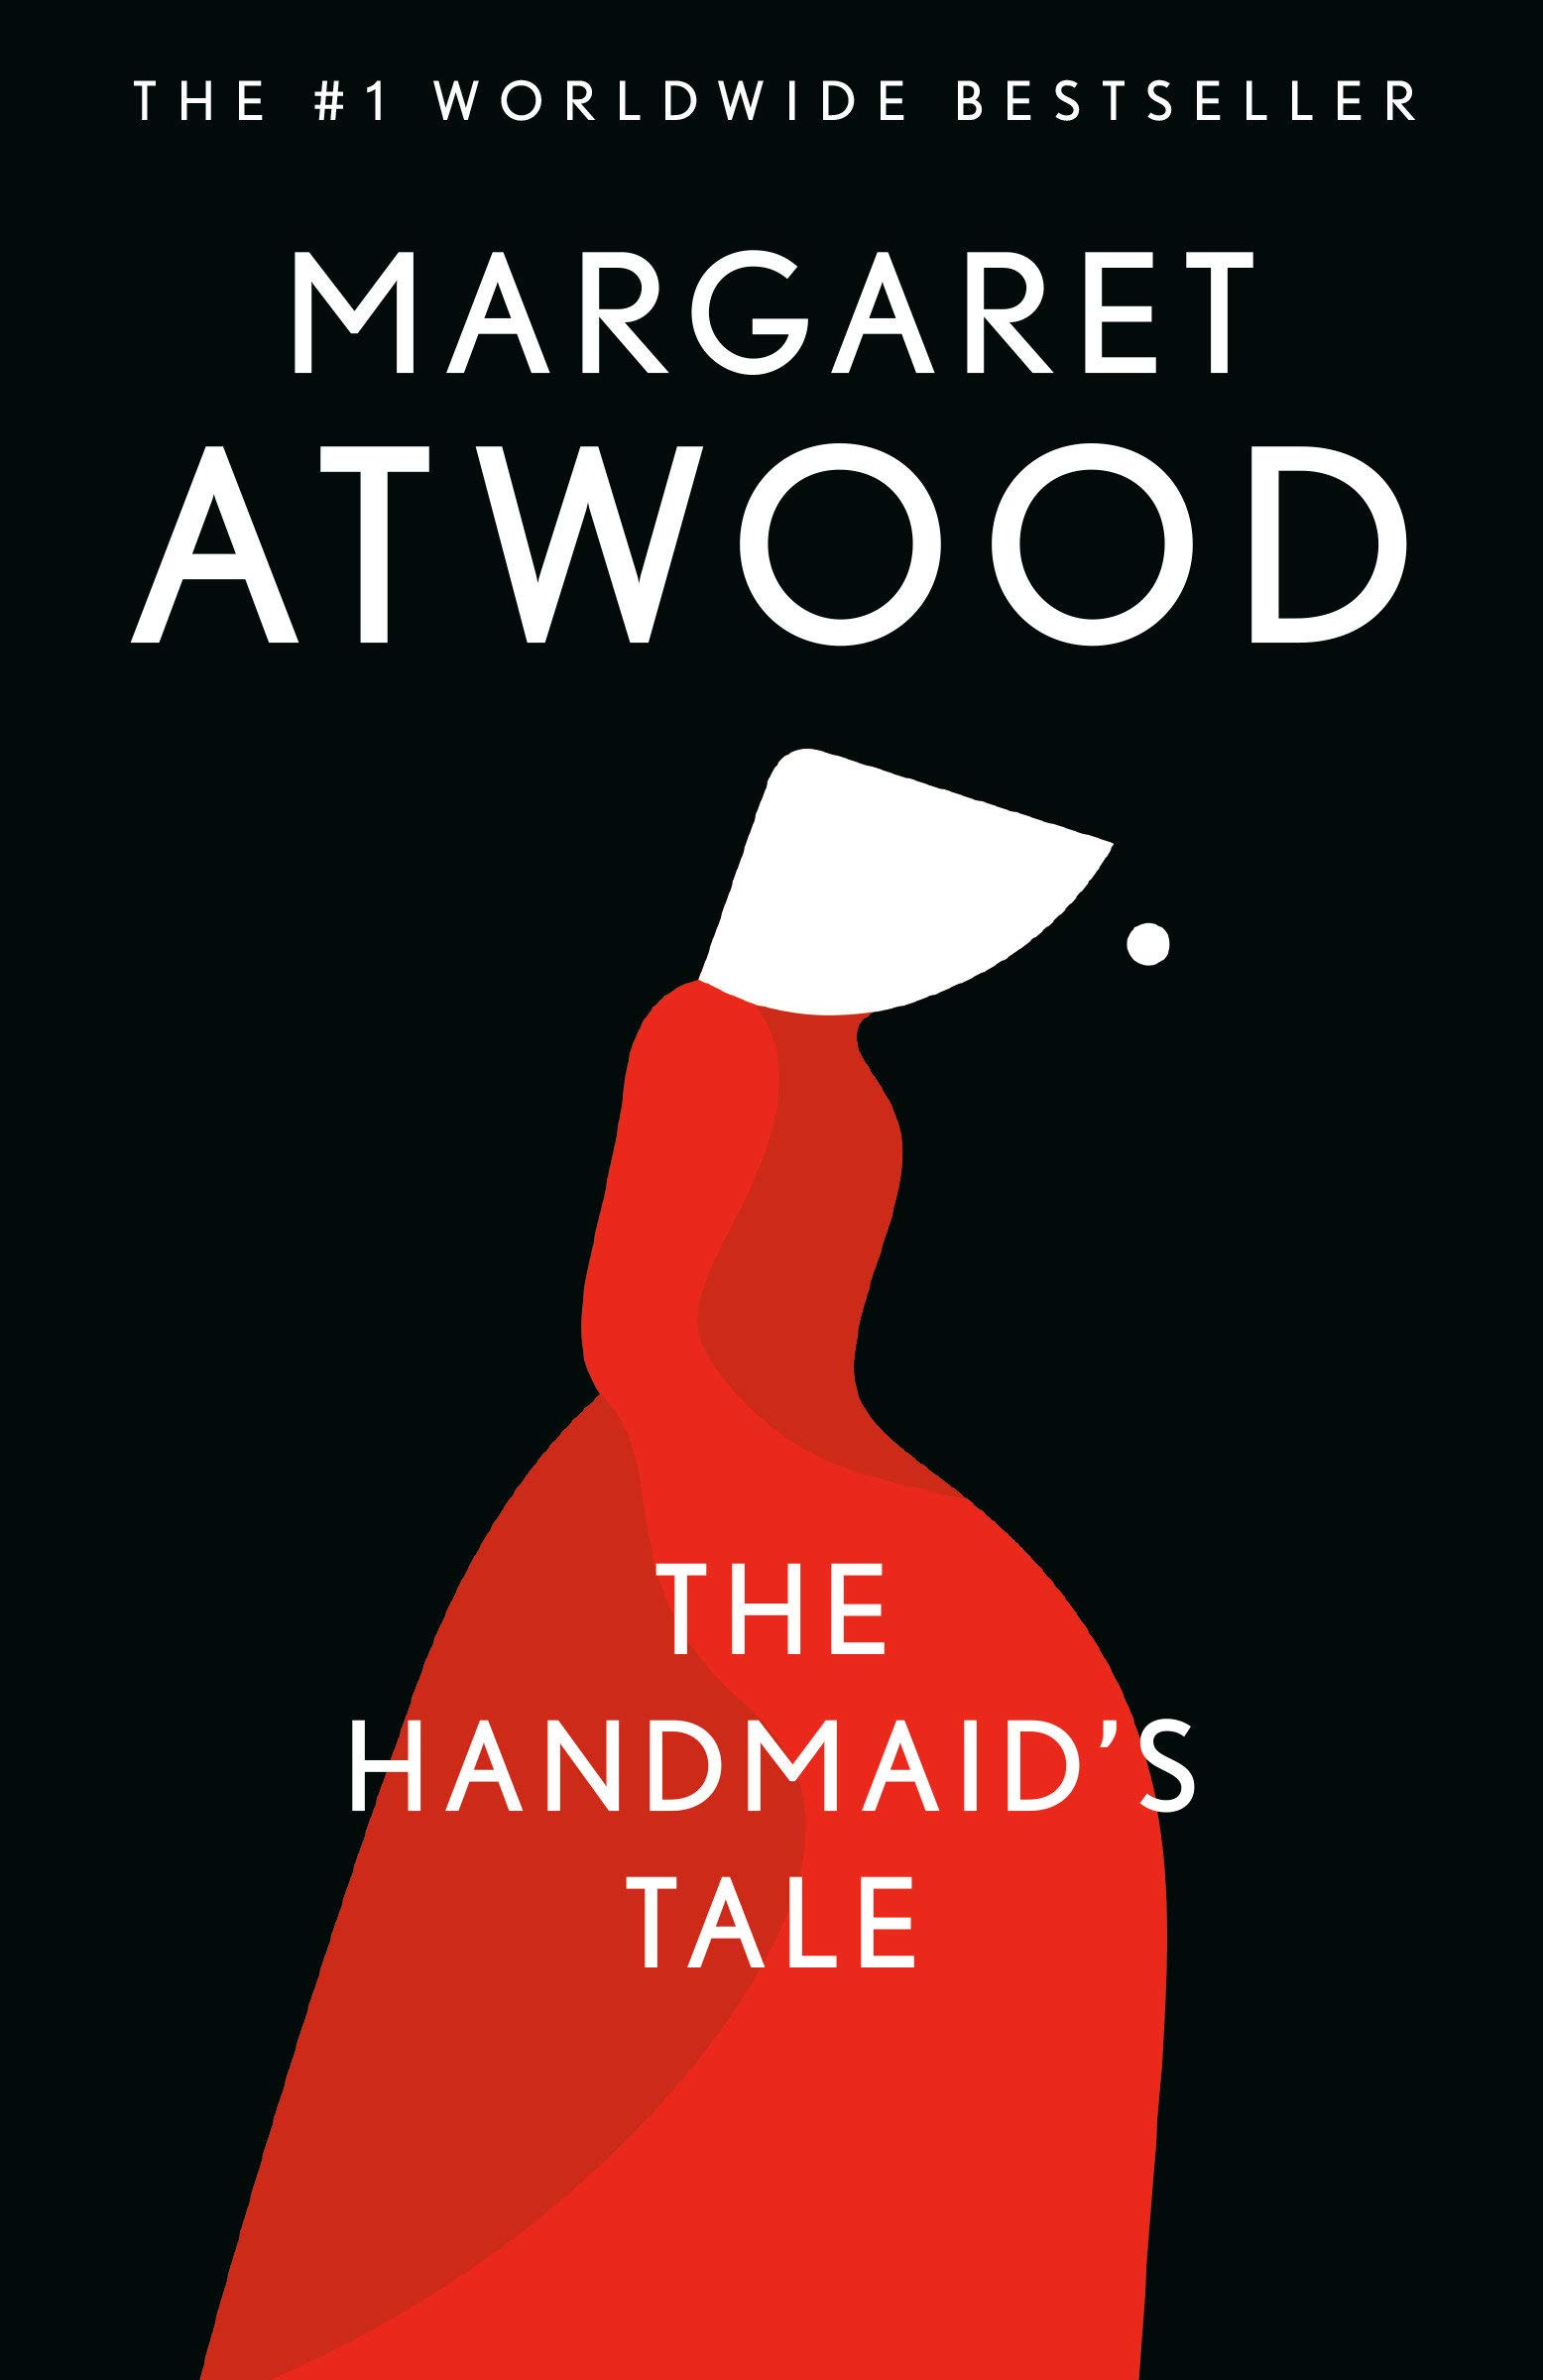 The Handmaid's Tale: Atwood, Margaret: 9780385490818: Amazon.com: Books